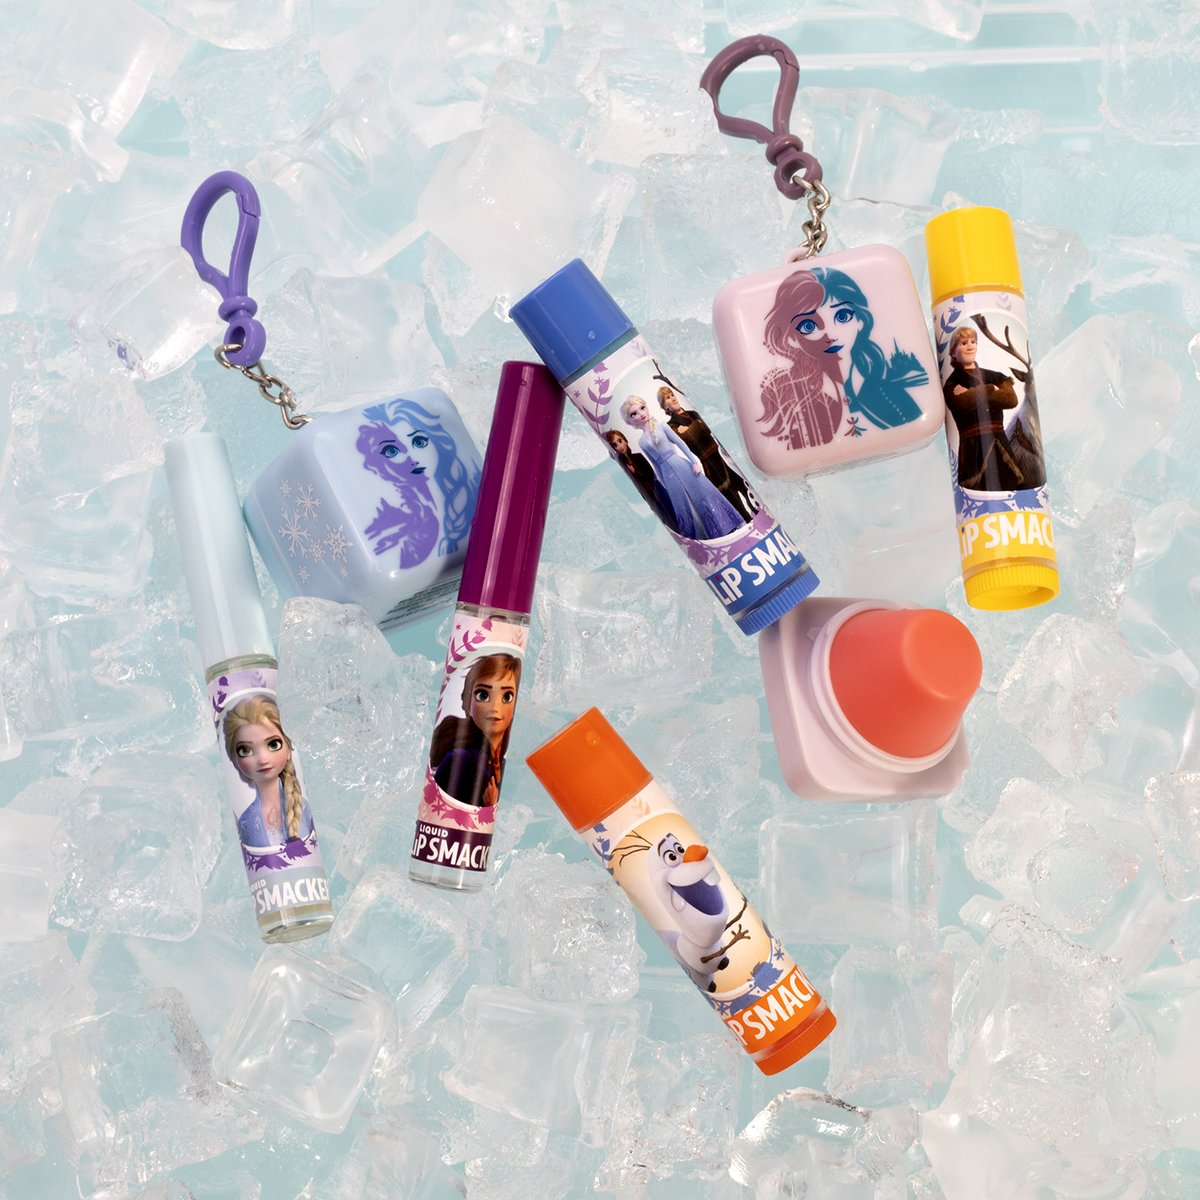 "Self-care Sundays are for ""Letting go"" of all the stress and taking care of numero uno, YOU! Find all our latest #Frozen2 items available @lipsmacker.com #bestflavorforever #lipsmacker #disneylipsmacker https://t.co/vu6e5ogrgC"